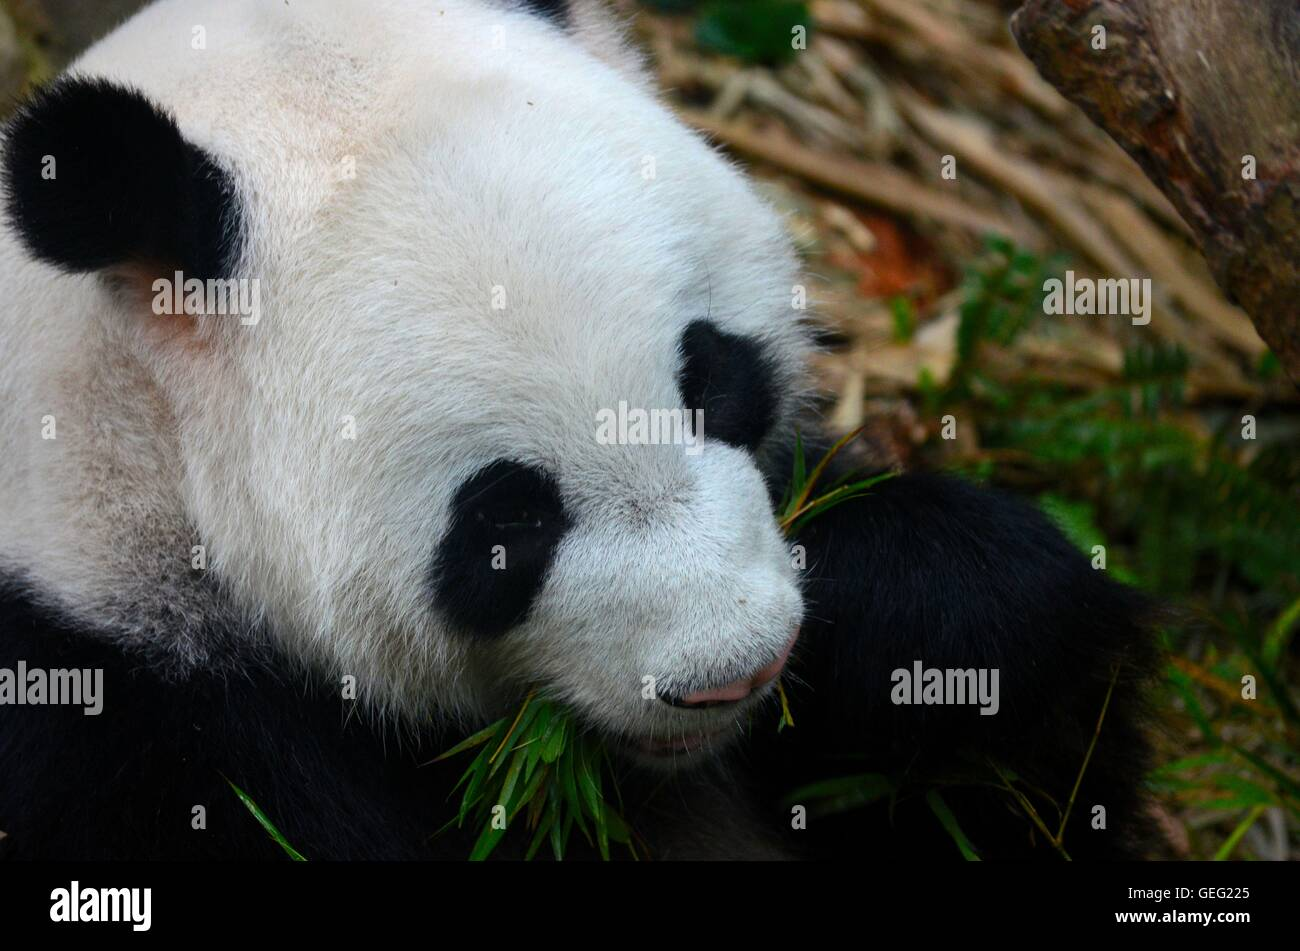 Panda bear eats with green leaves in mouth - Stock Image